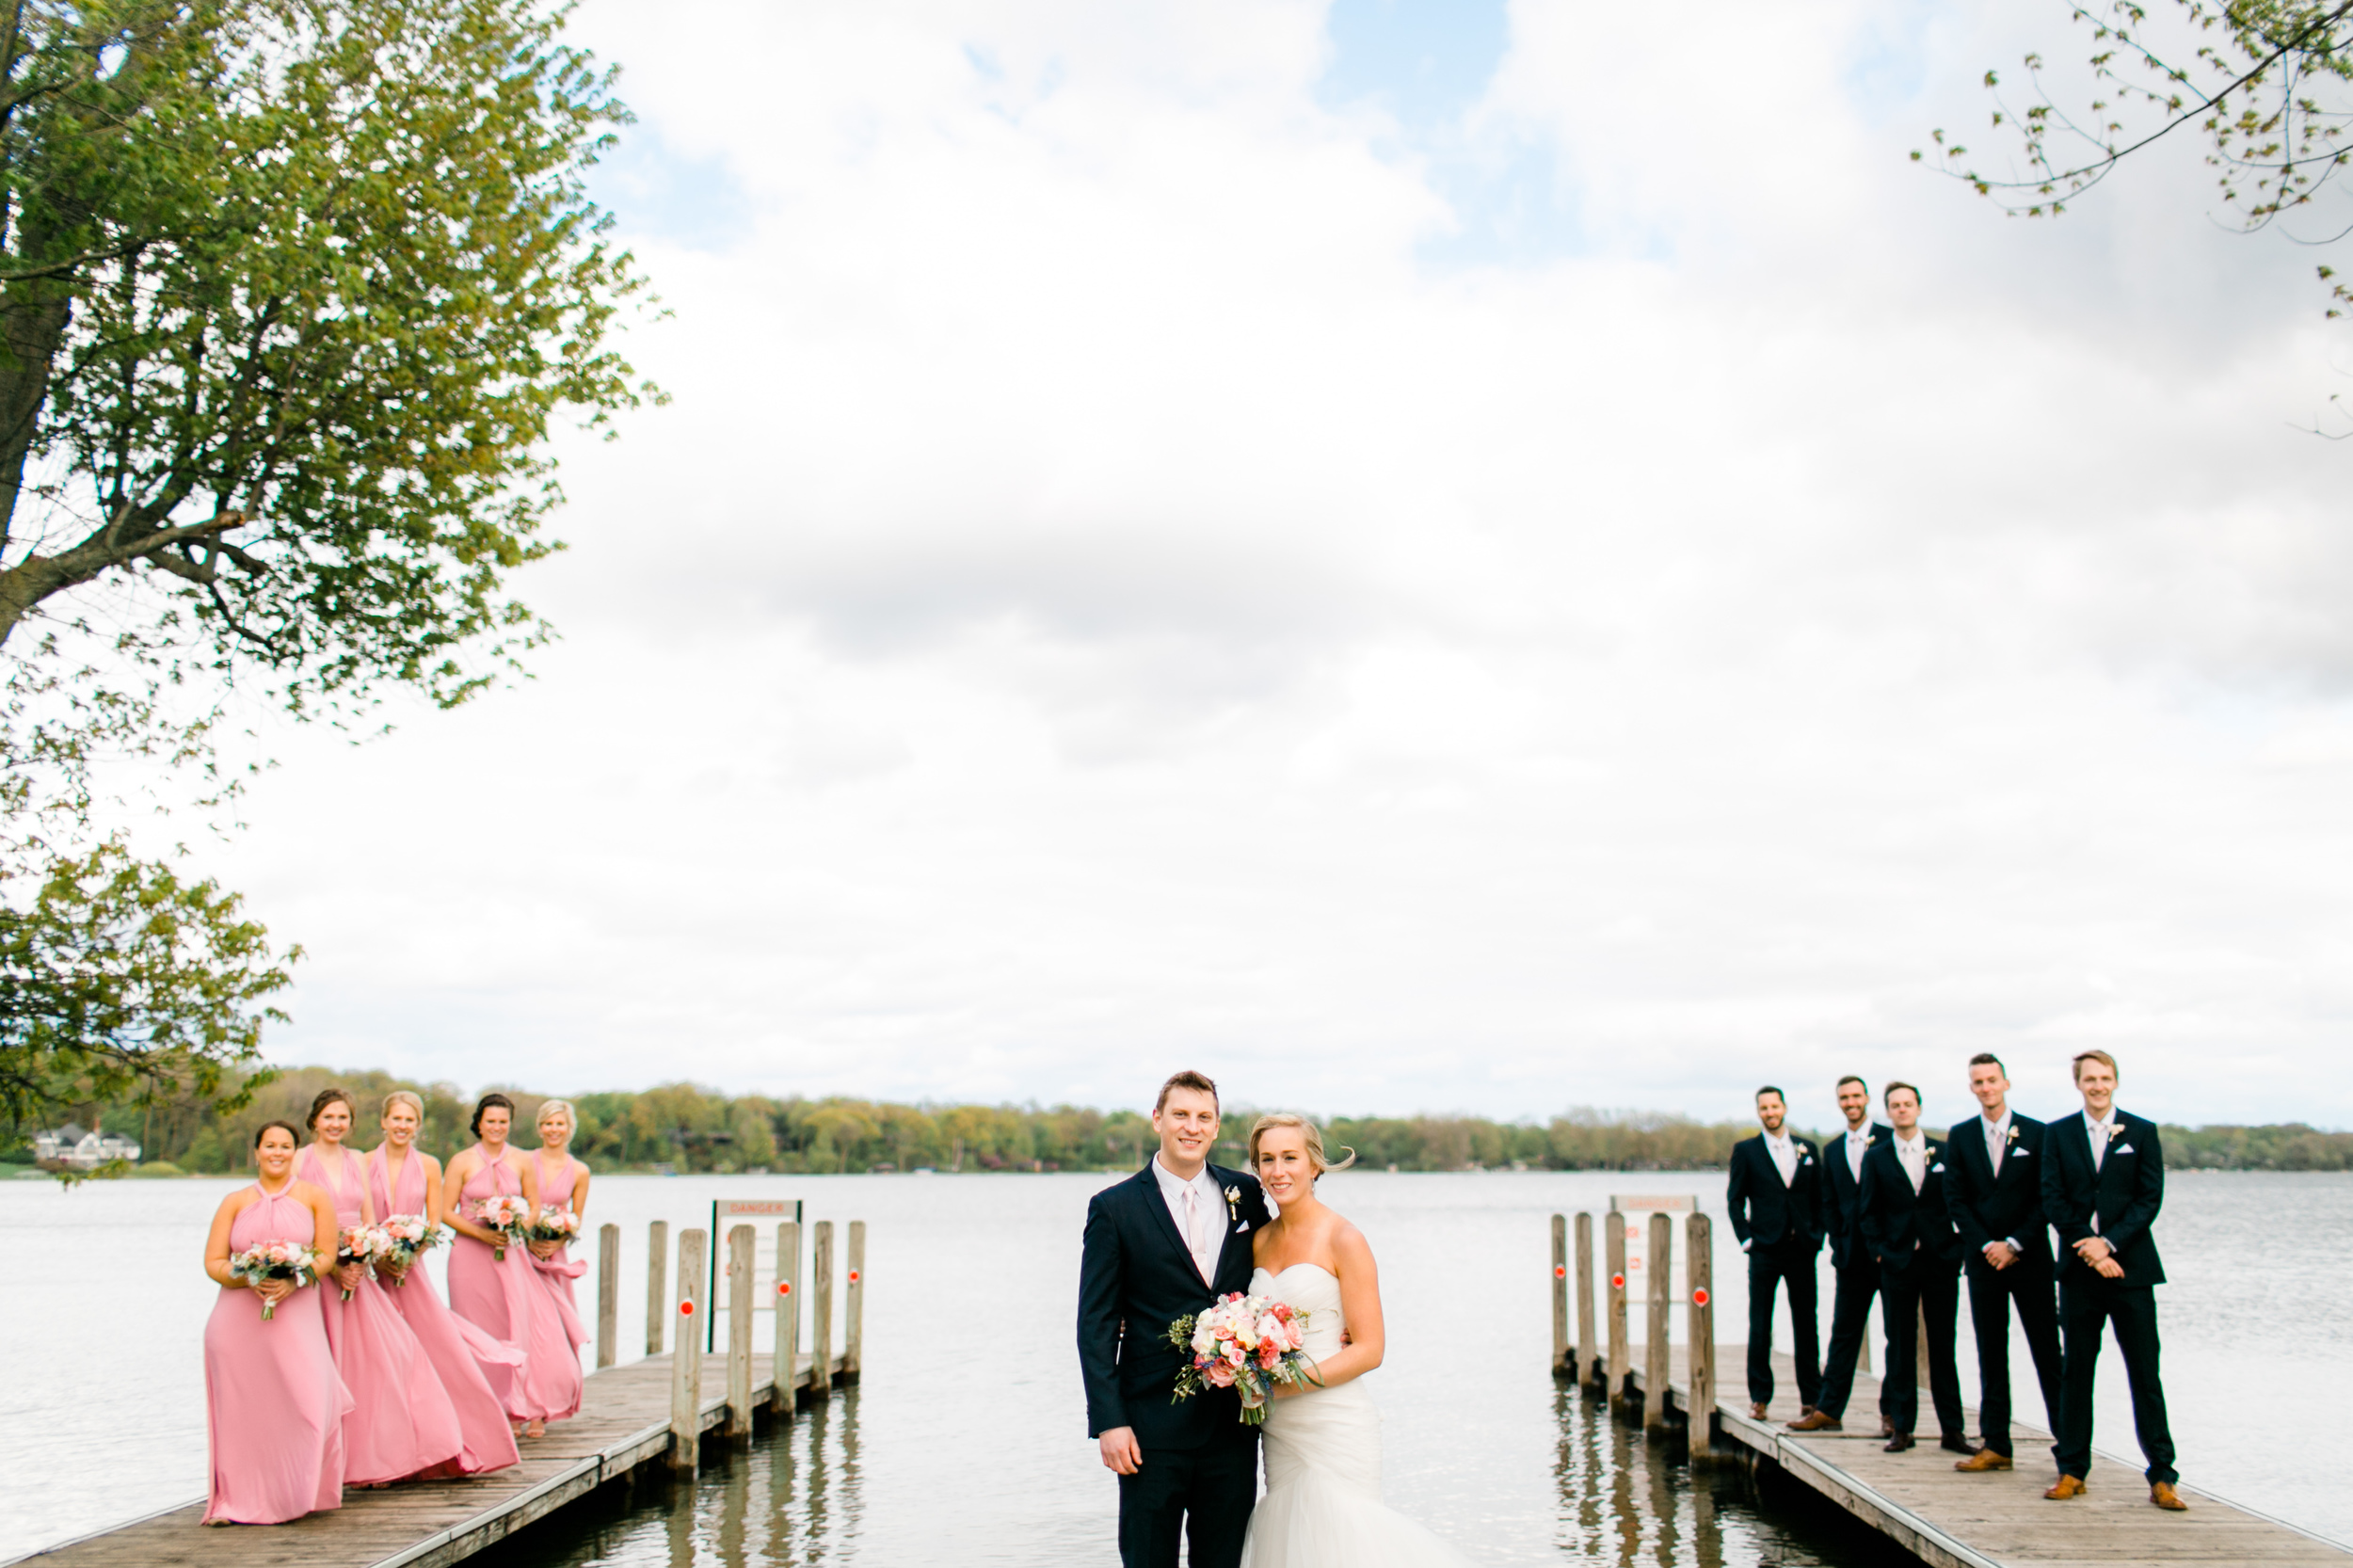 mayden photography weddings-40.jpg